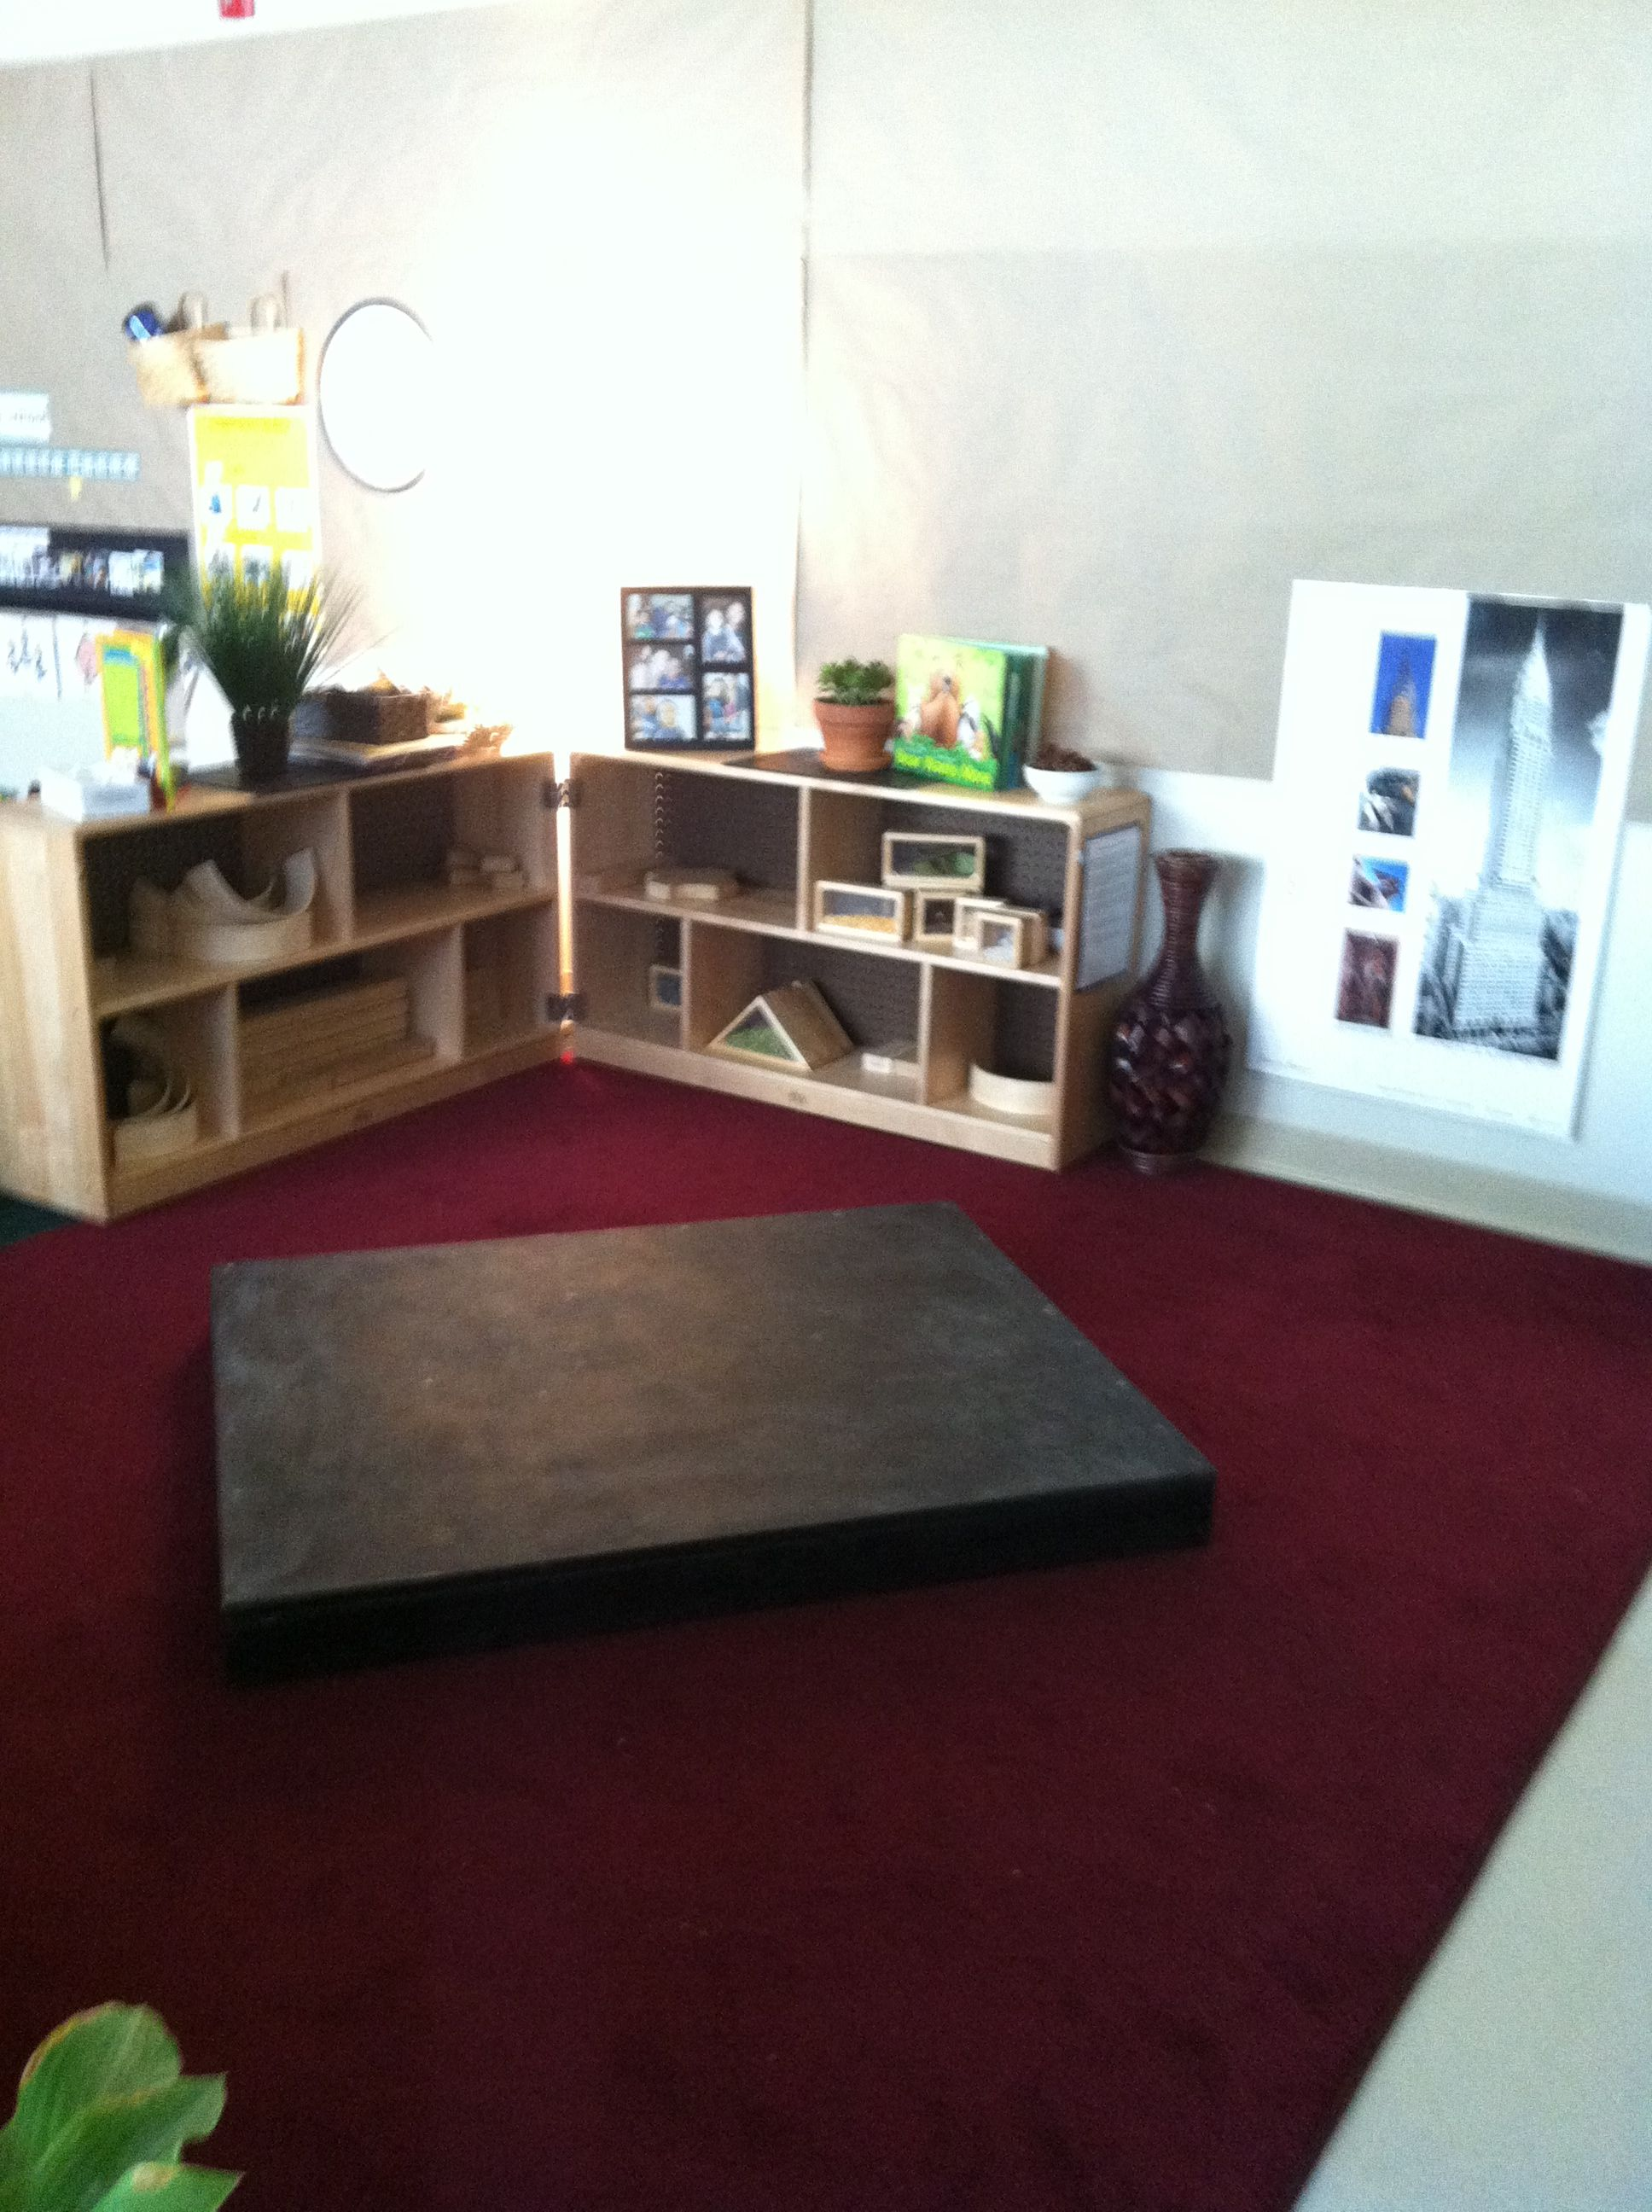 Block center for preschool, black platform with chalk board paint for kids to create roads, towns, etc.